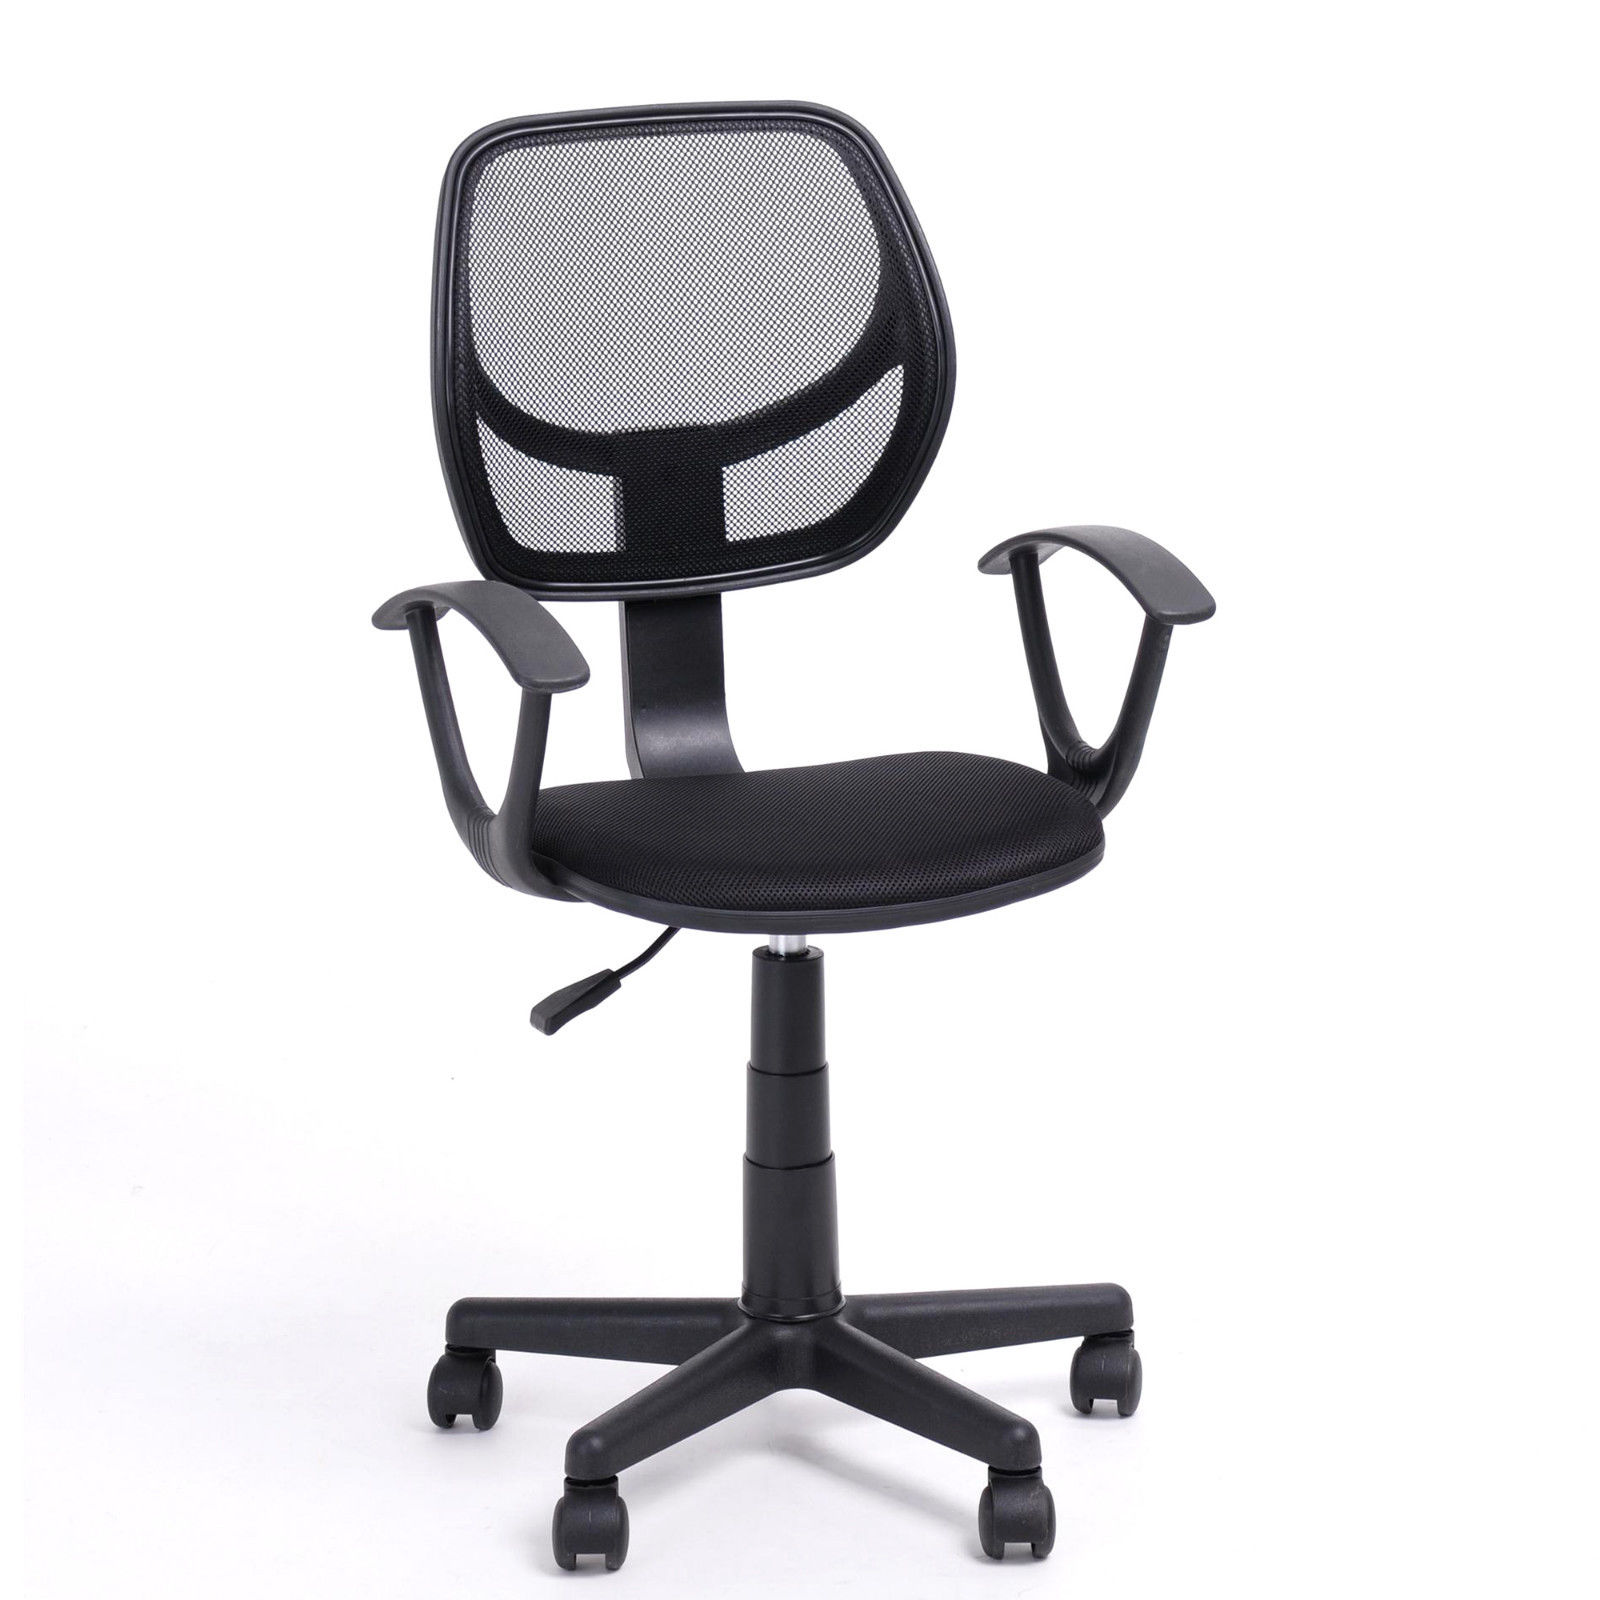 office chair with adjustable arms desk harvey norman ergonomic mid back home task computer